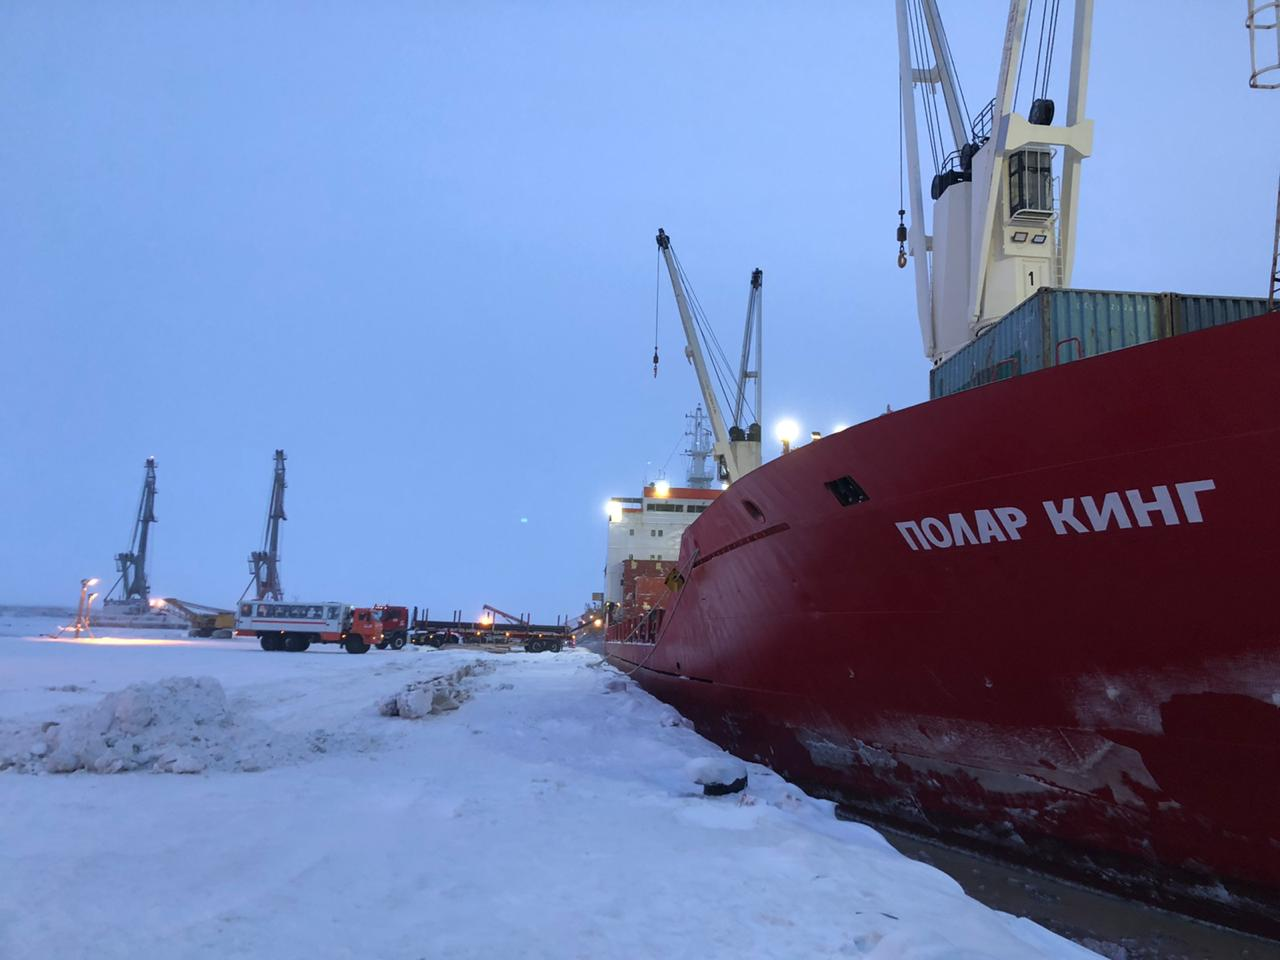 Andrey Osipov and Polar King: Arkhangelsk-Sabetta/Sabetta 2 (Salmanovskoye (Utrenneye) oil and gas condensate field)